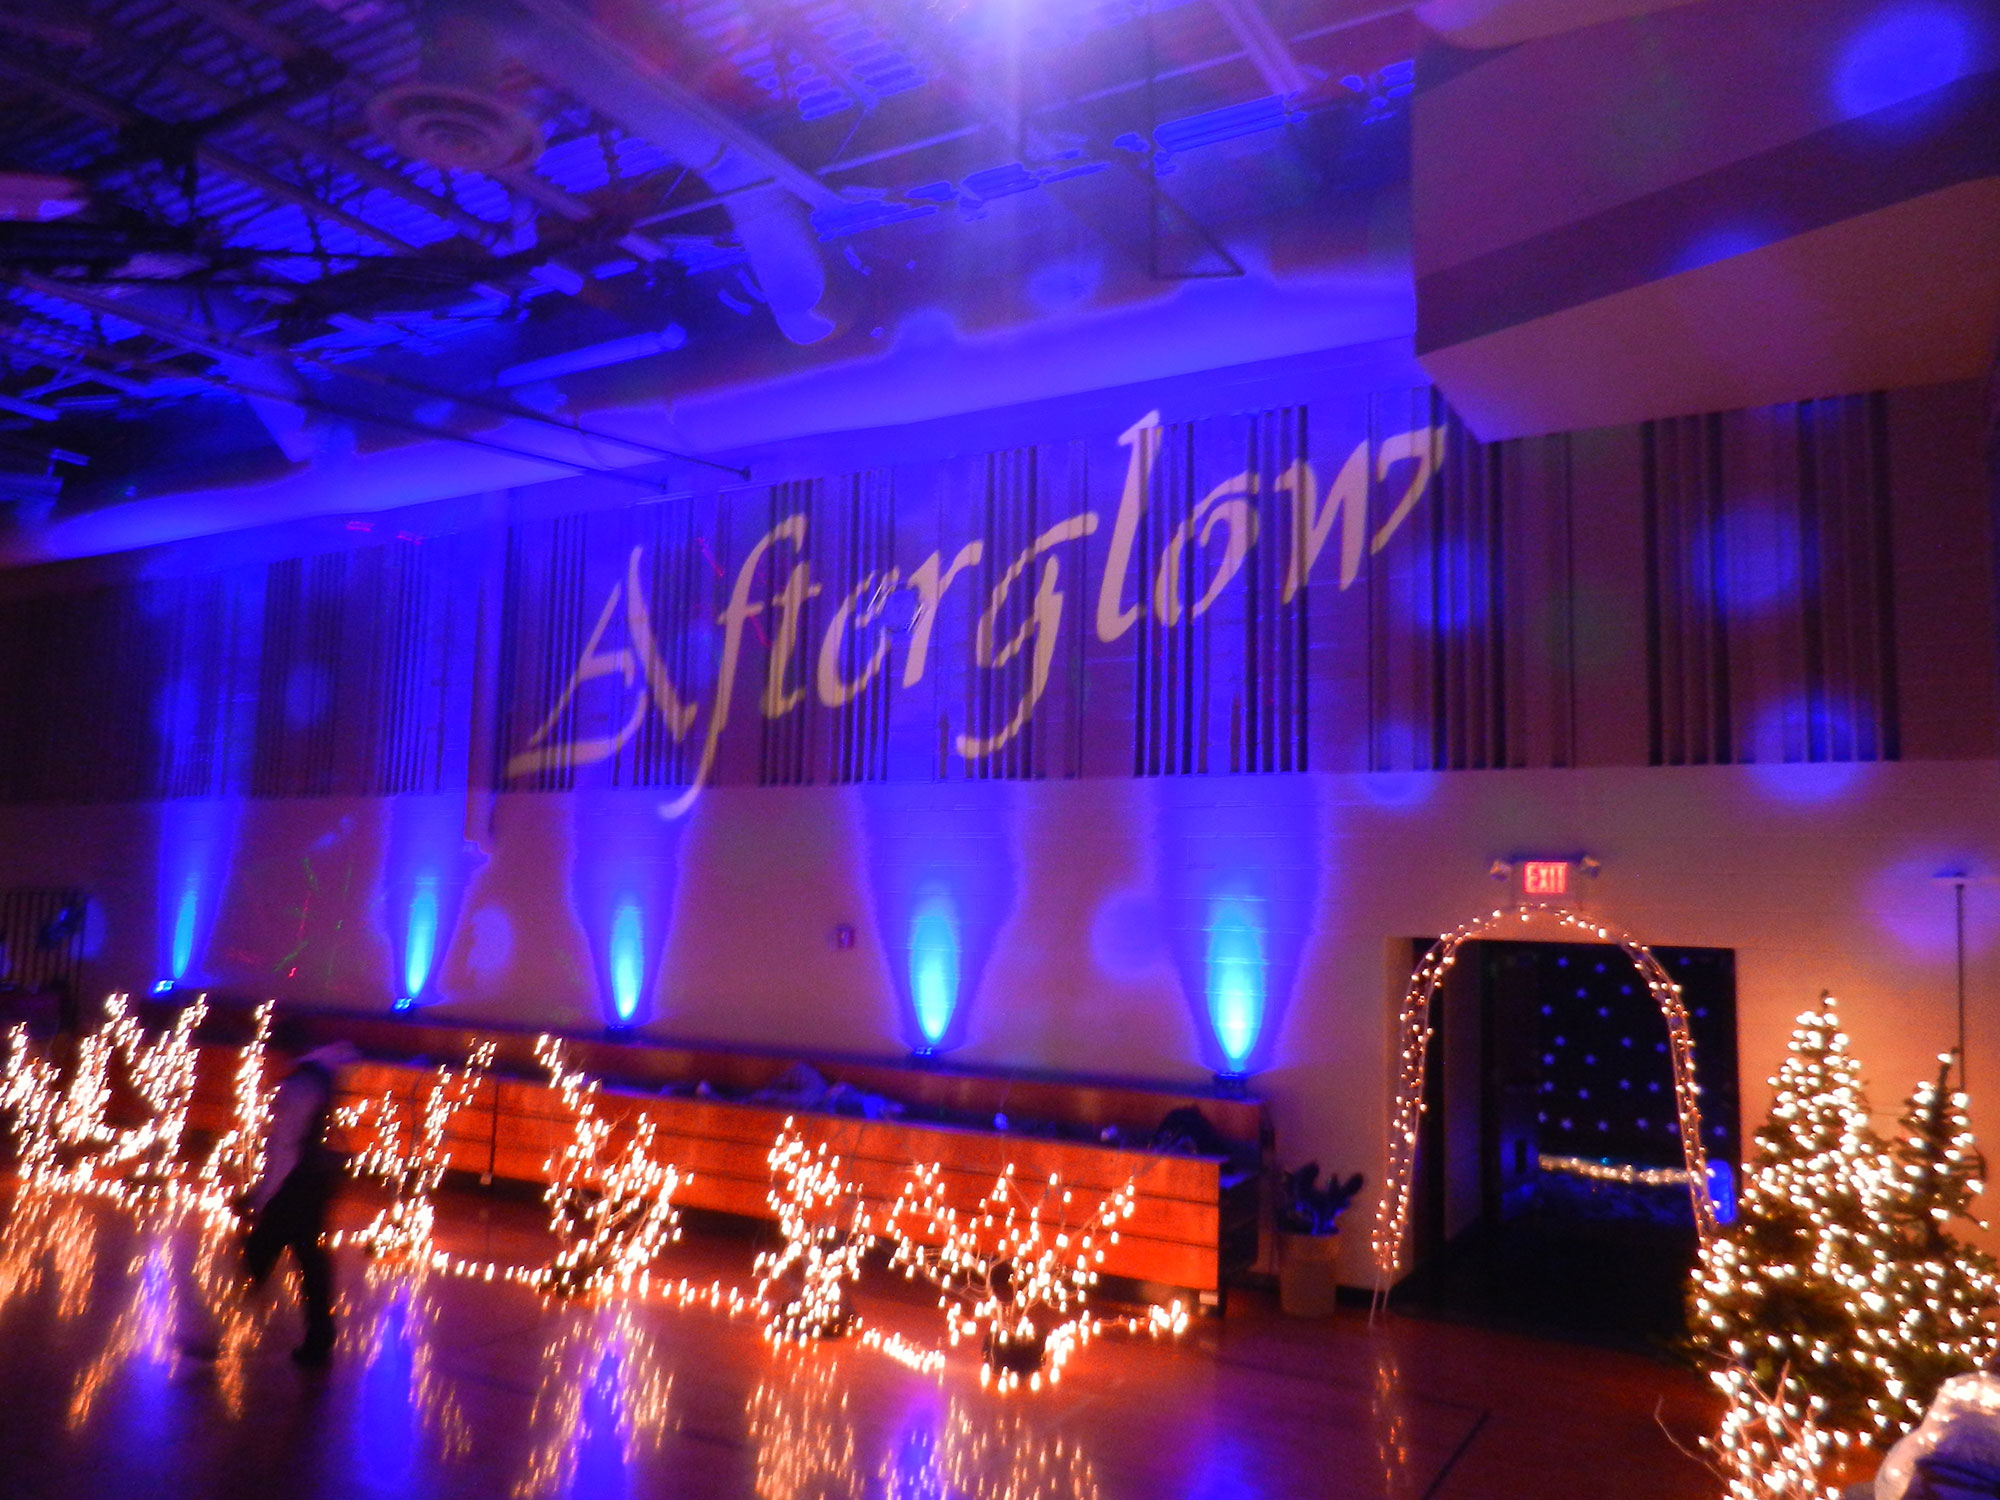 Projectors - Party Hits Music and Light Show - Wisconsin DJ Dance Weddings Events